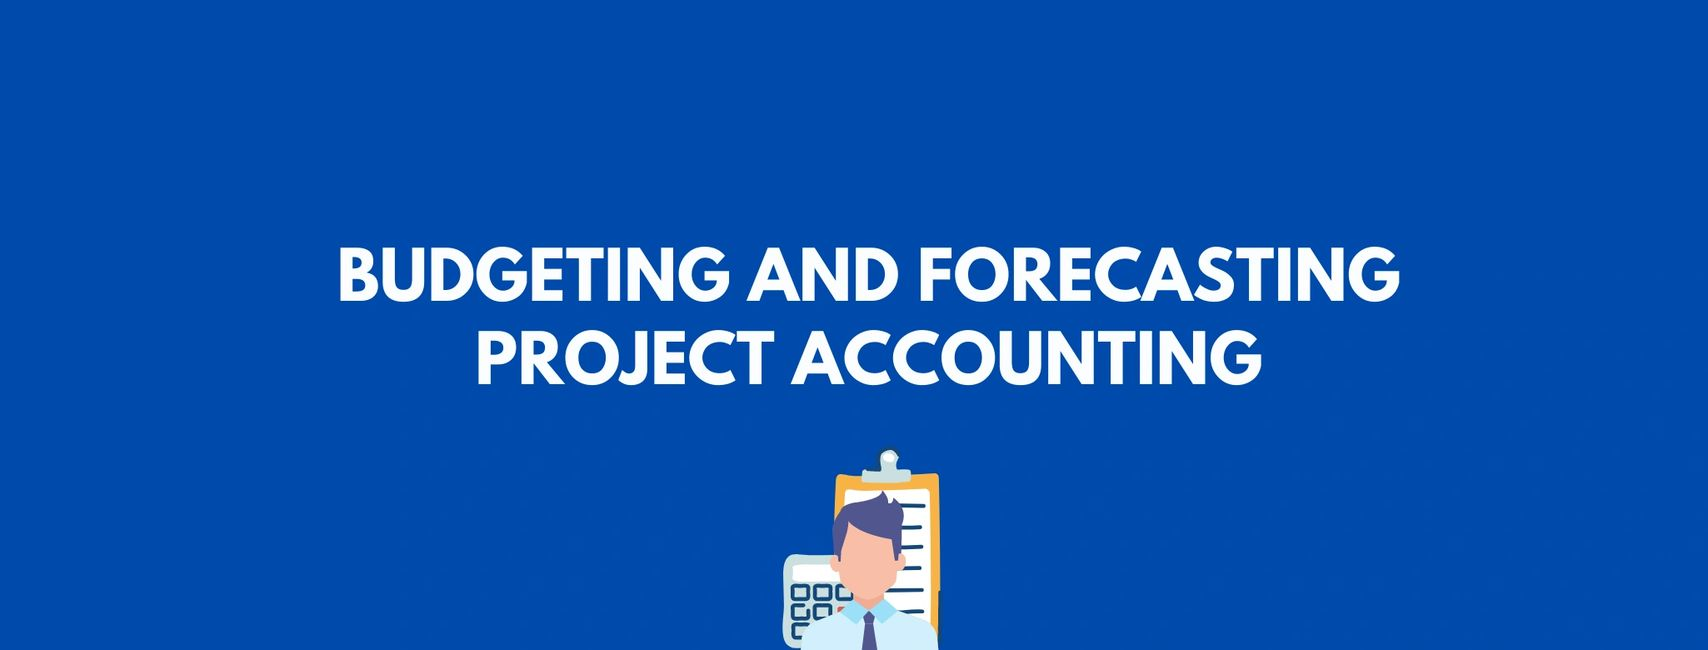 Budgeting and Forecasting - Project Accounting - London